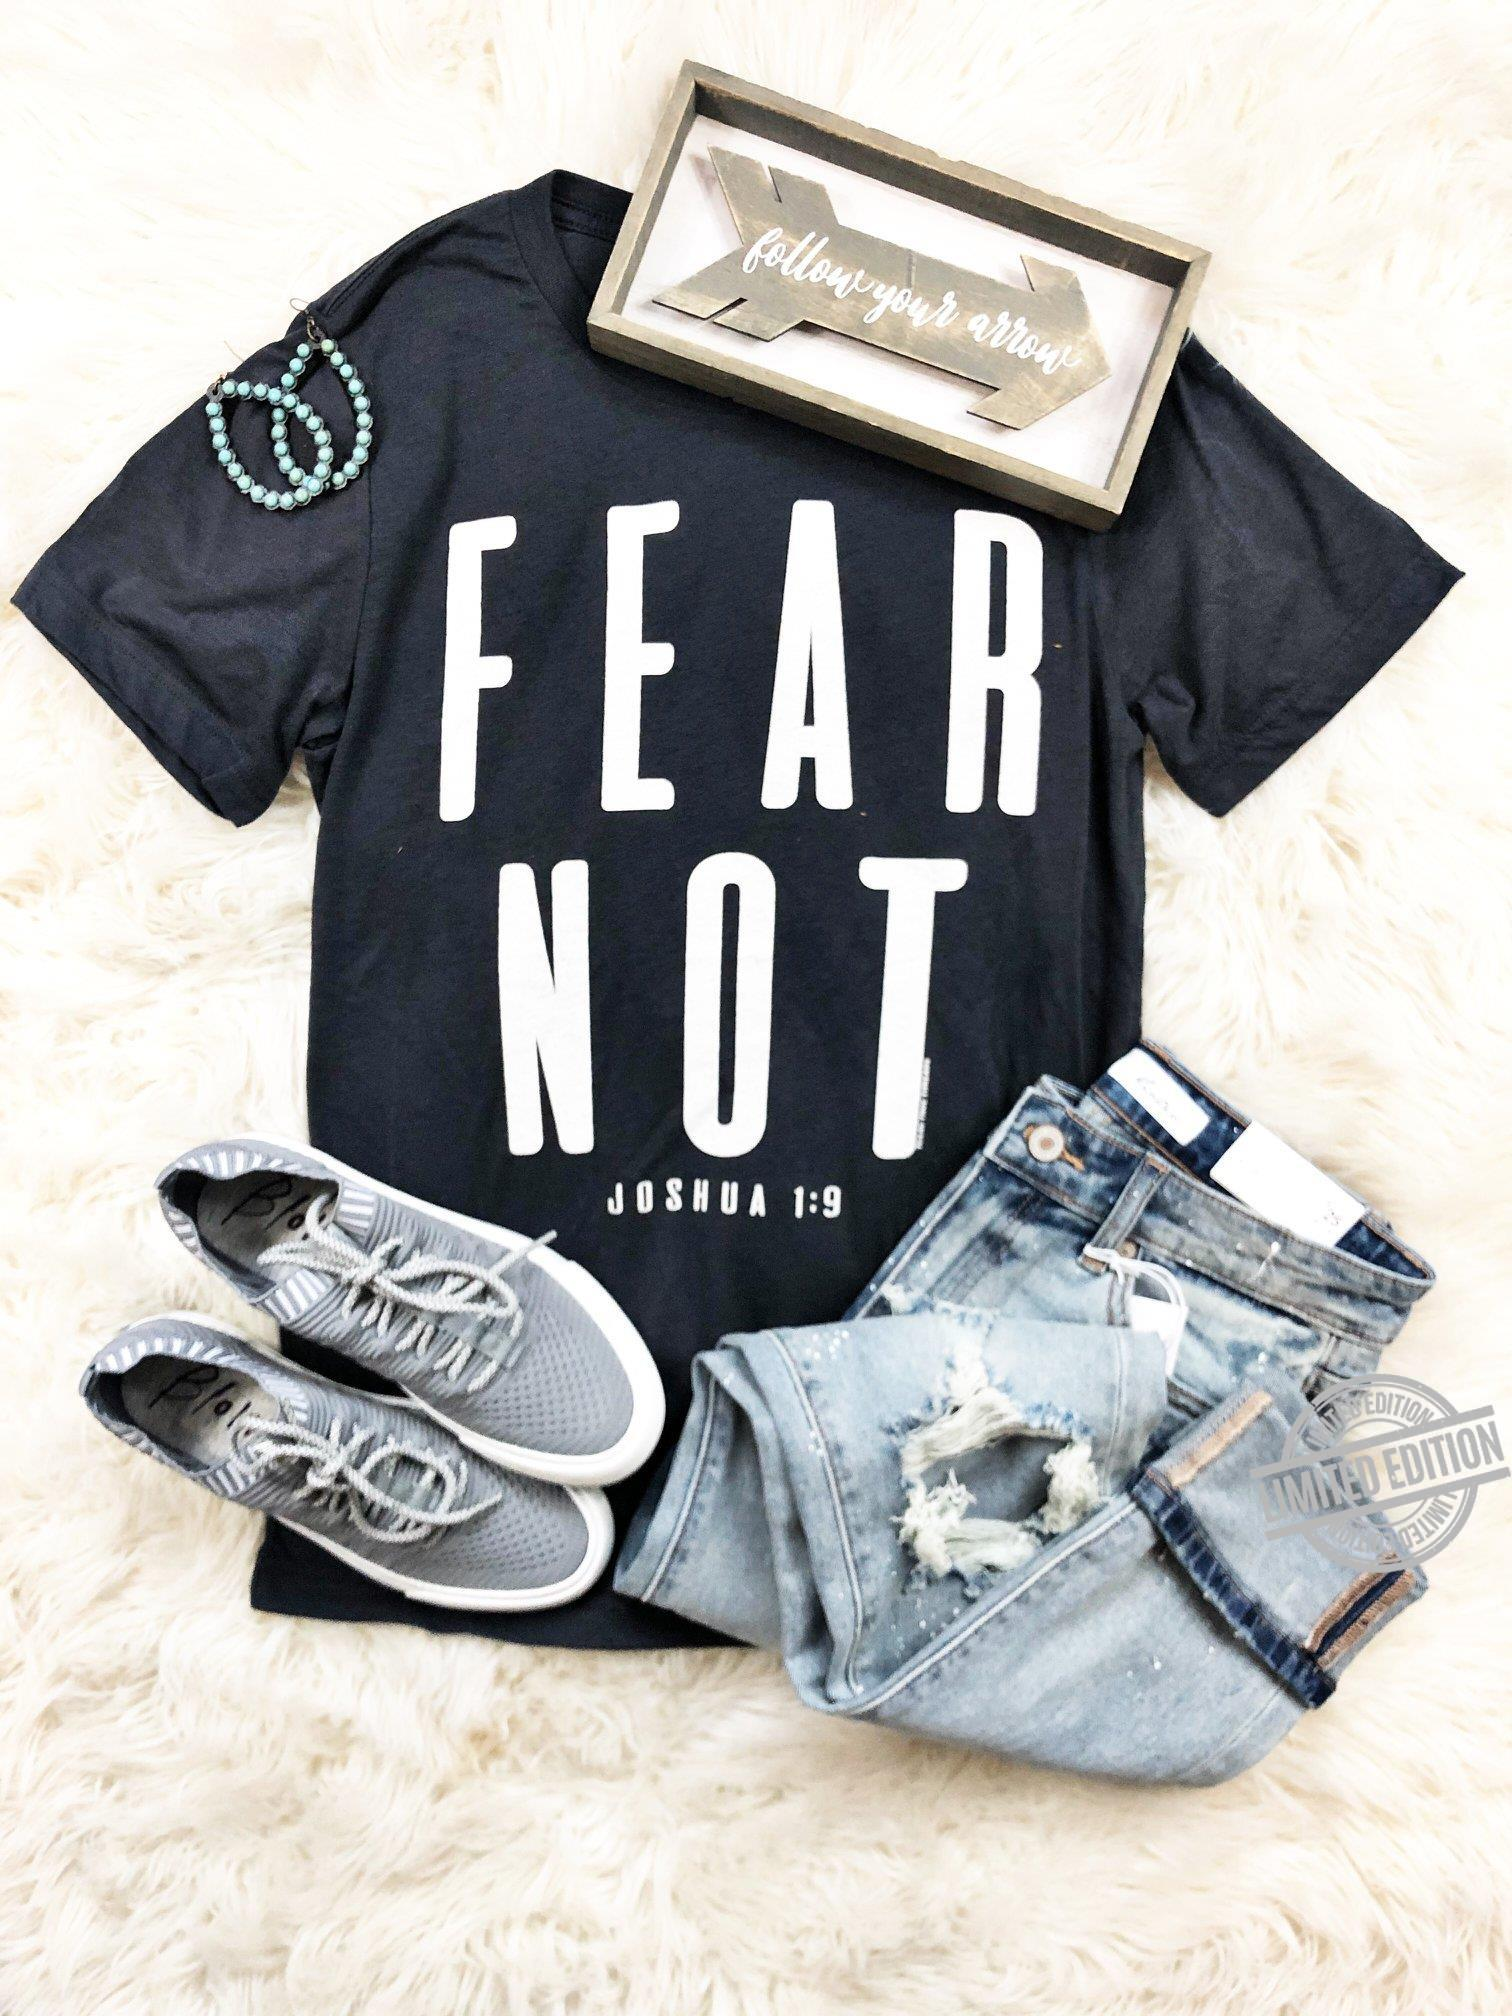 Fear Not Joshua Shirt